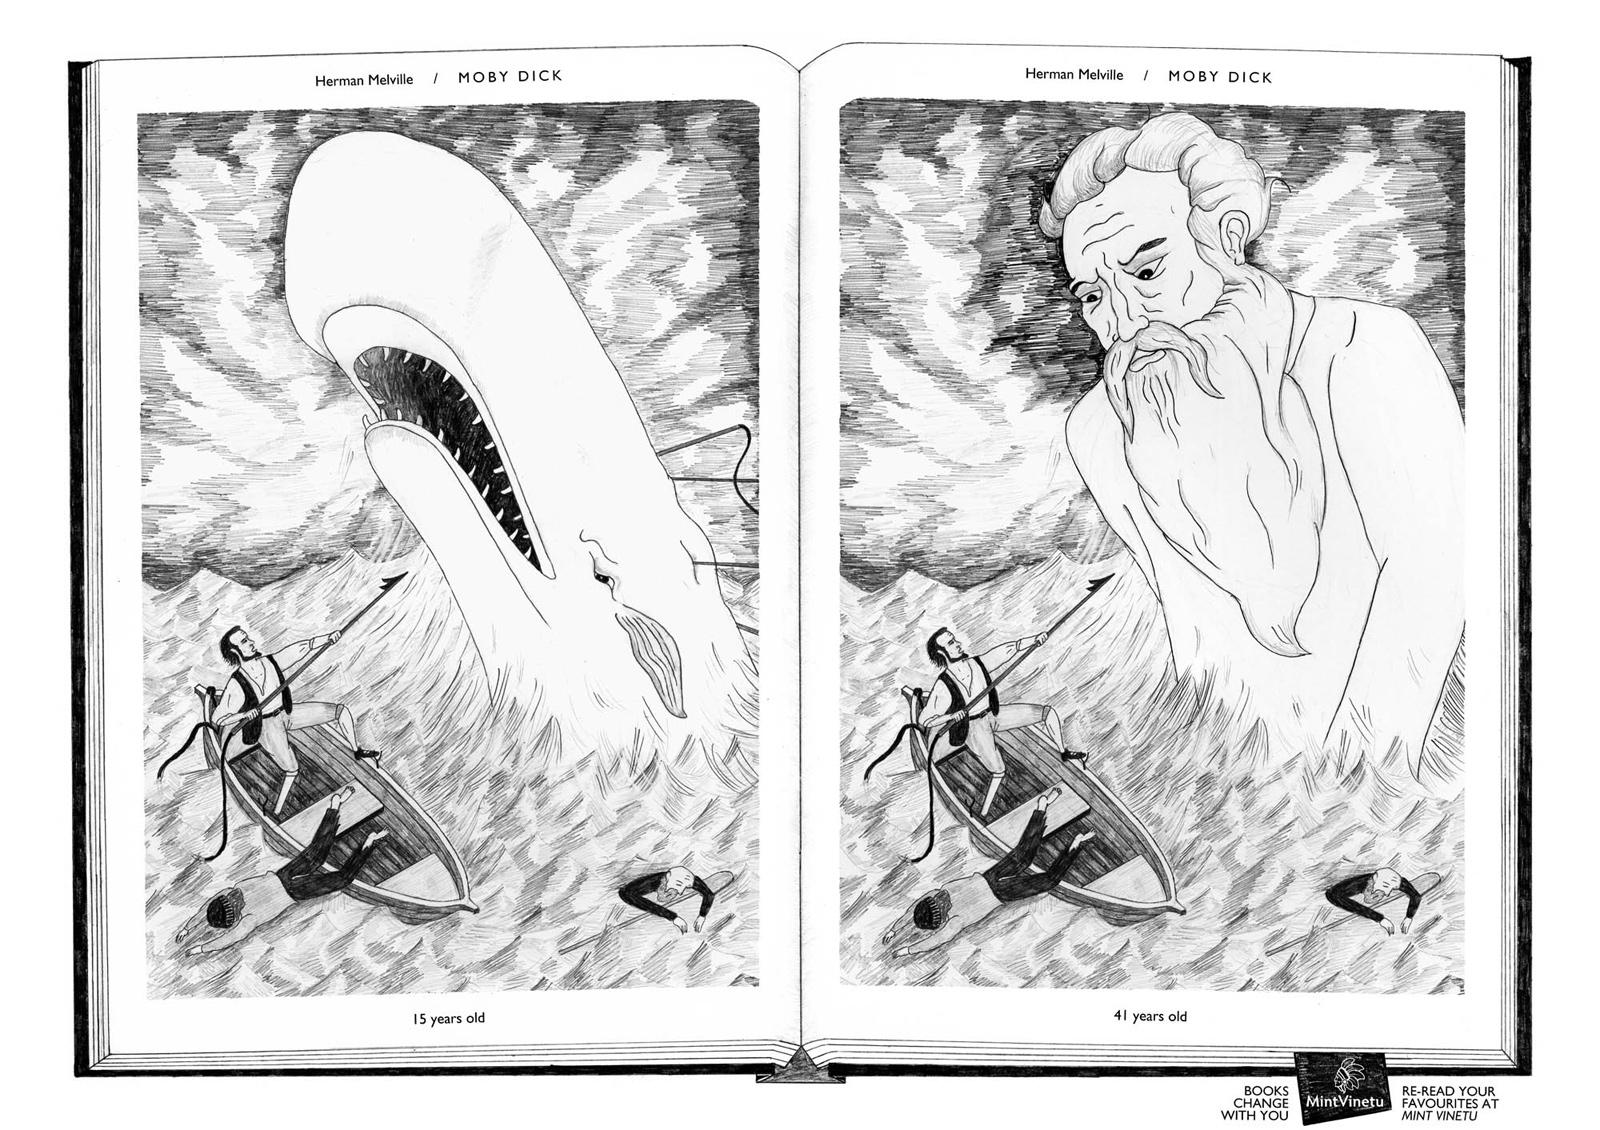 Mint Vinetu Print Ad -  Books Change With You, Moby Dick